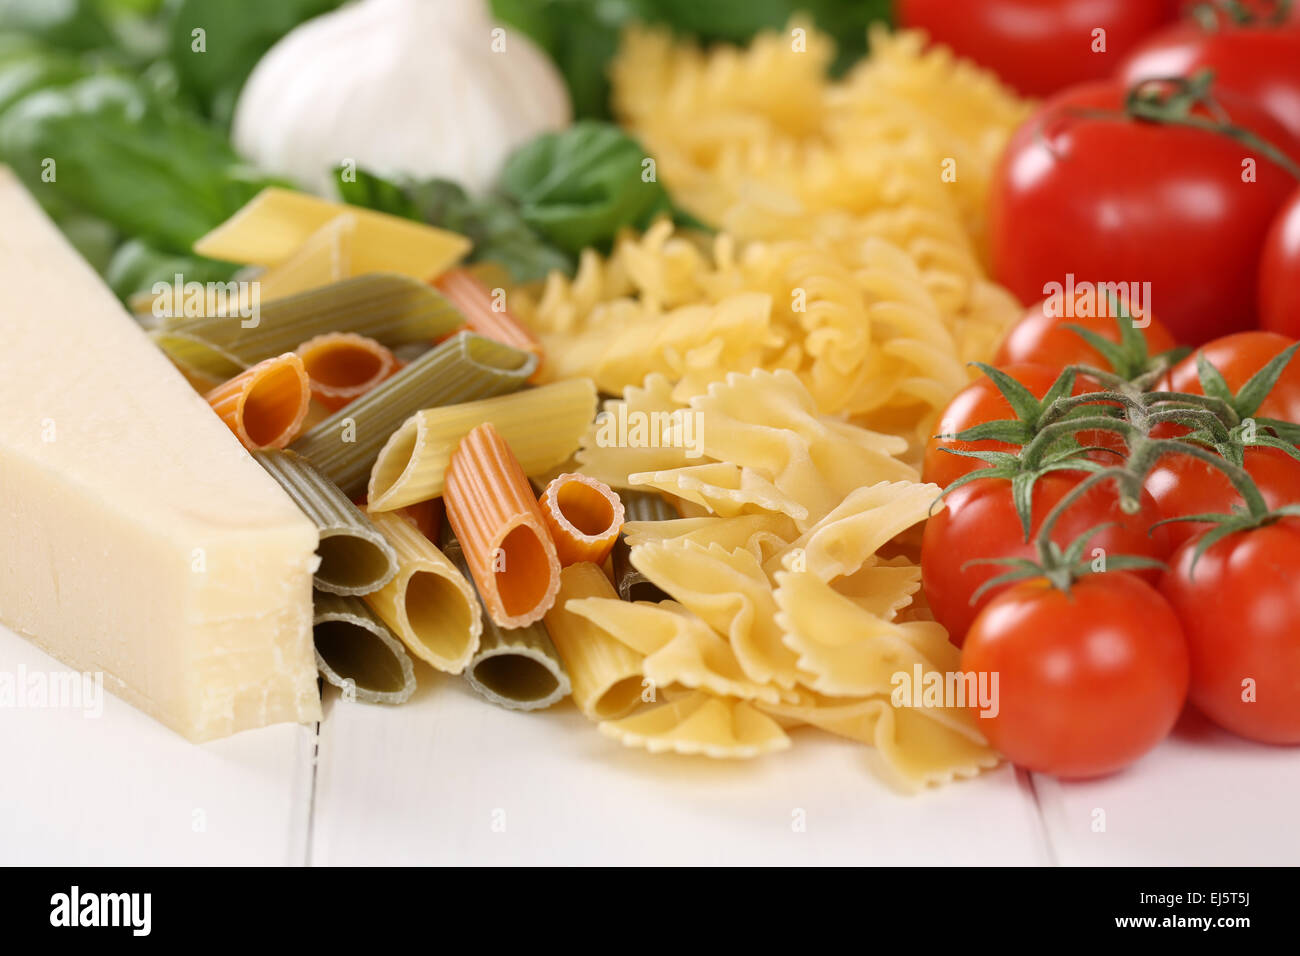 Ingredients for a Pasta noodles meal with tomatoes, penne, basil and Parmesan cheese - Stock Image